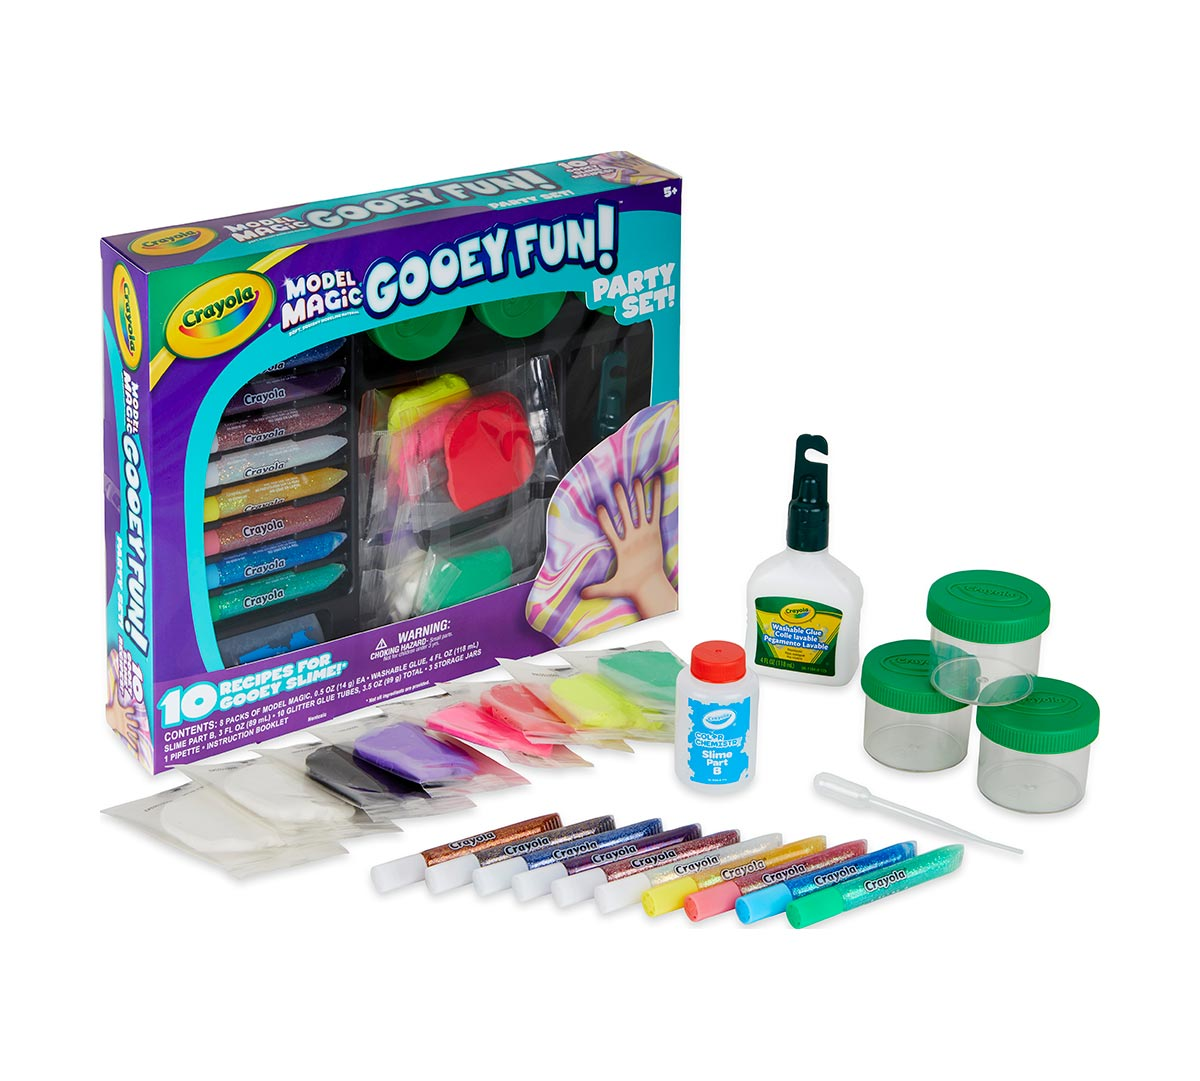 Model Magic Gooey Fun! Party Set!